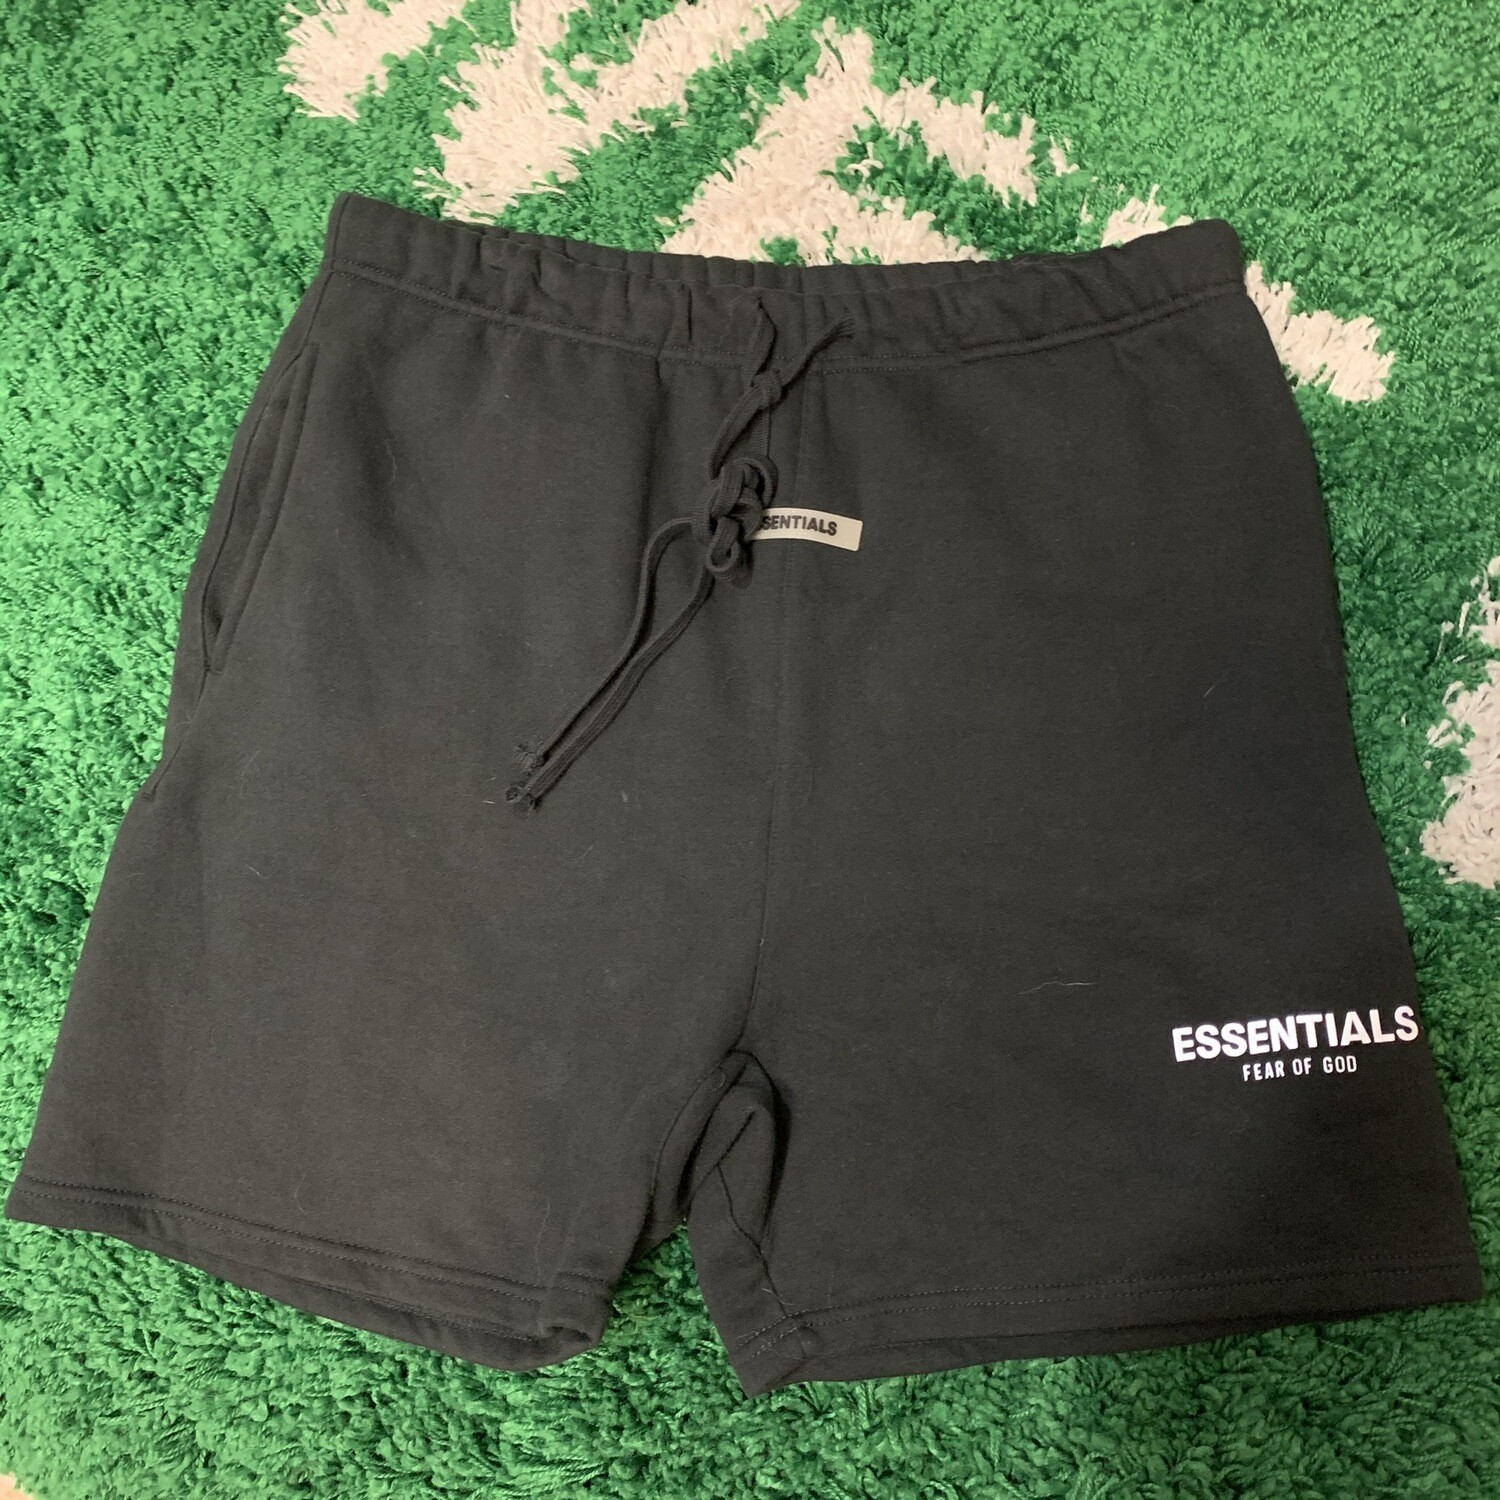 Fear of God Essentials Cotton Shorts Size Large